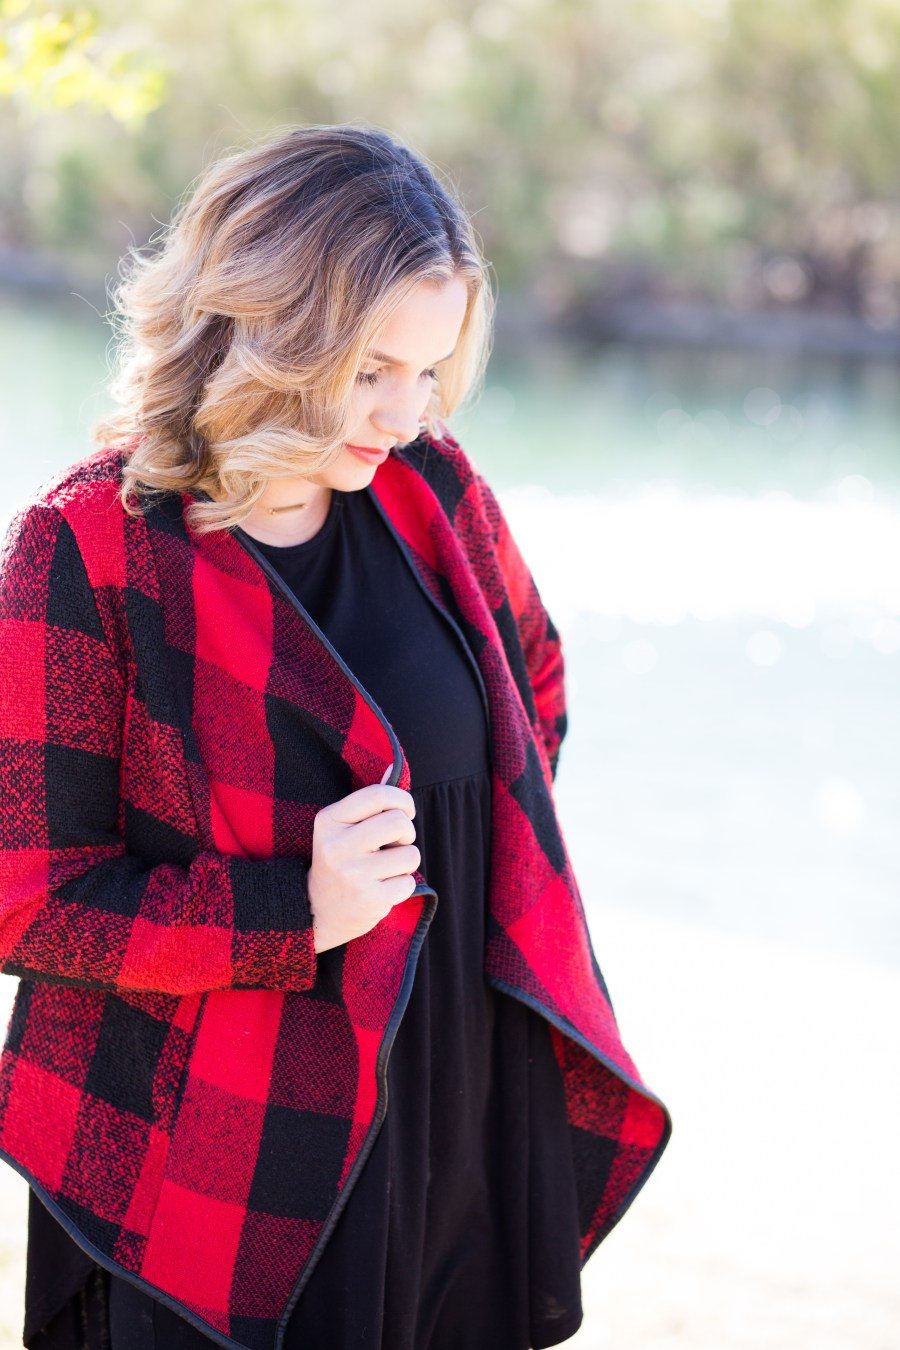 The Holidays with Casi // cupcakeMAG // RubyClaire Boutique Christmas collection // red and black blazer